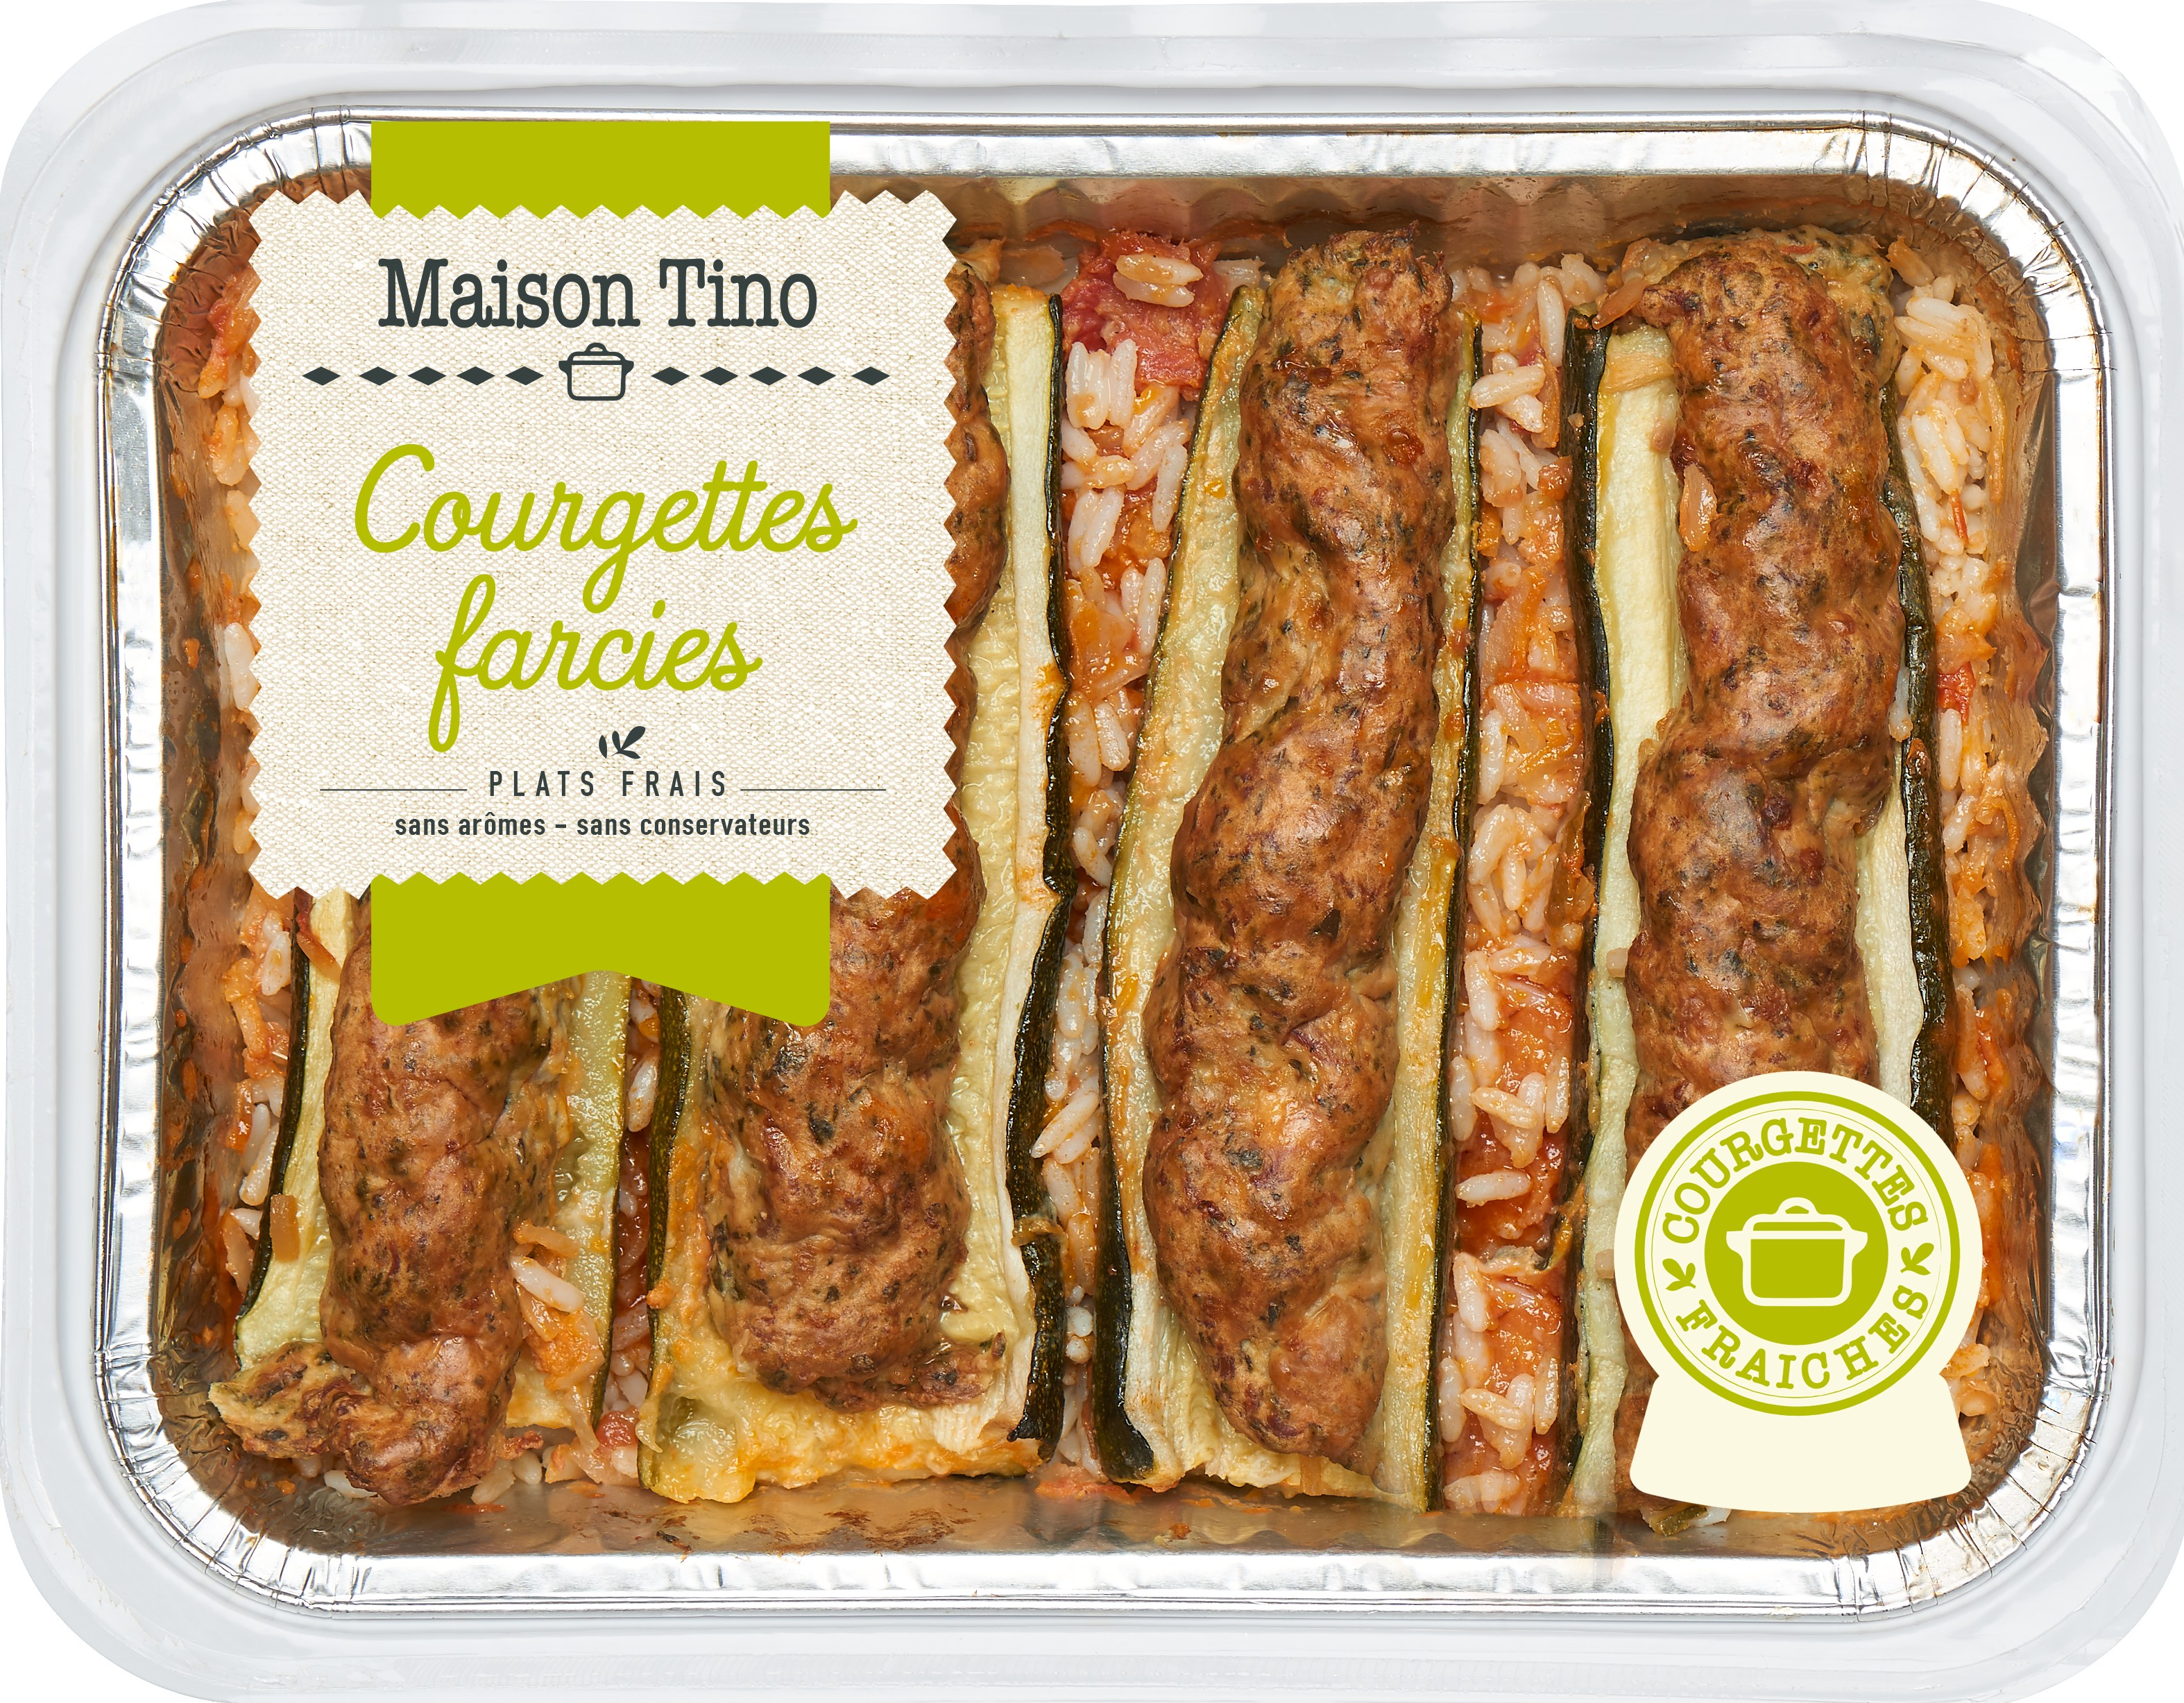 Courgettes Farcies, Maison Tino (800 g)